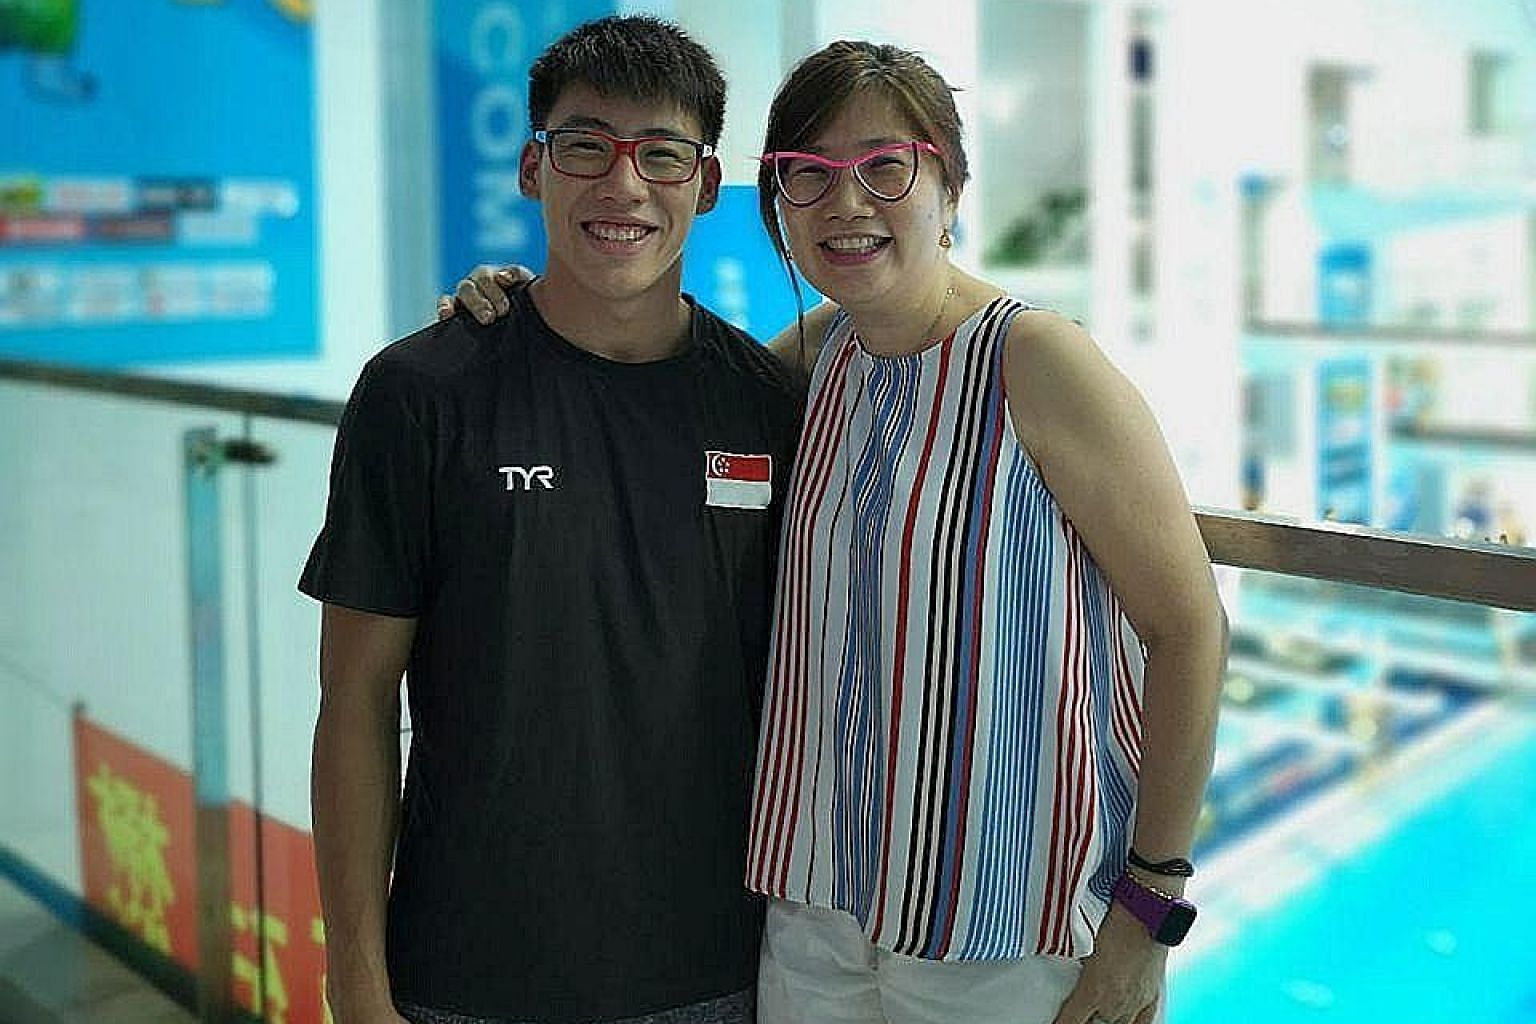 National diver Jonathan Chan and his mother, Nuen. Chan is the first Singaporean diver to qualify for the Olympics and was scheduled to compete at the Tokyo Games before they were postponed.